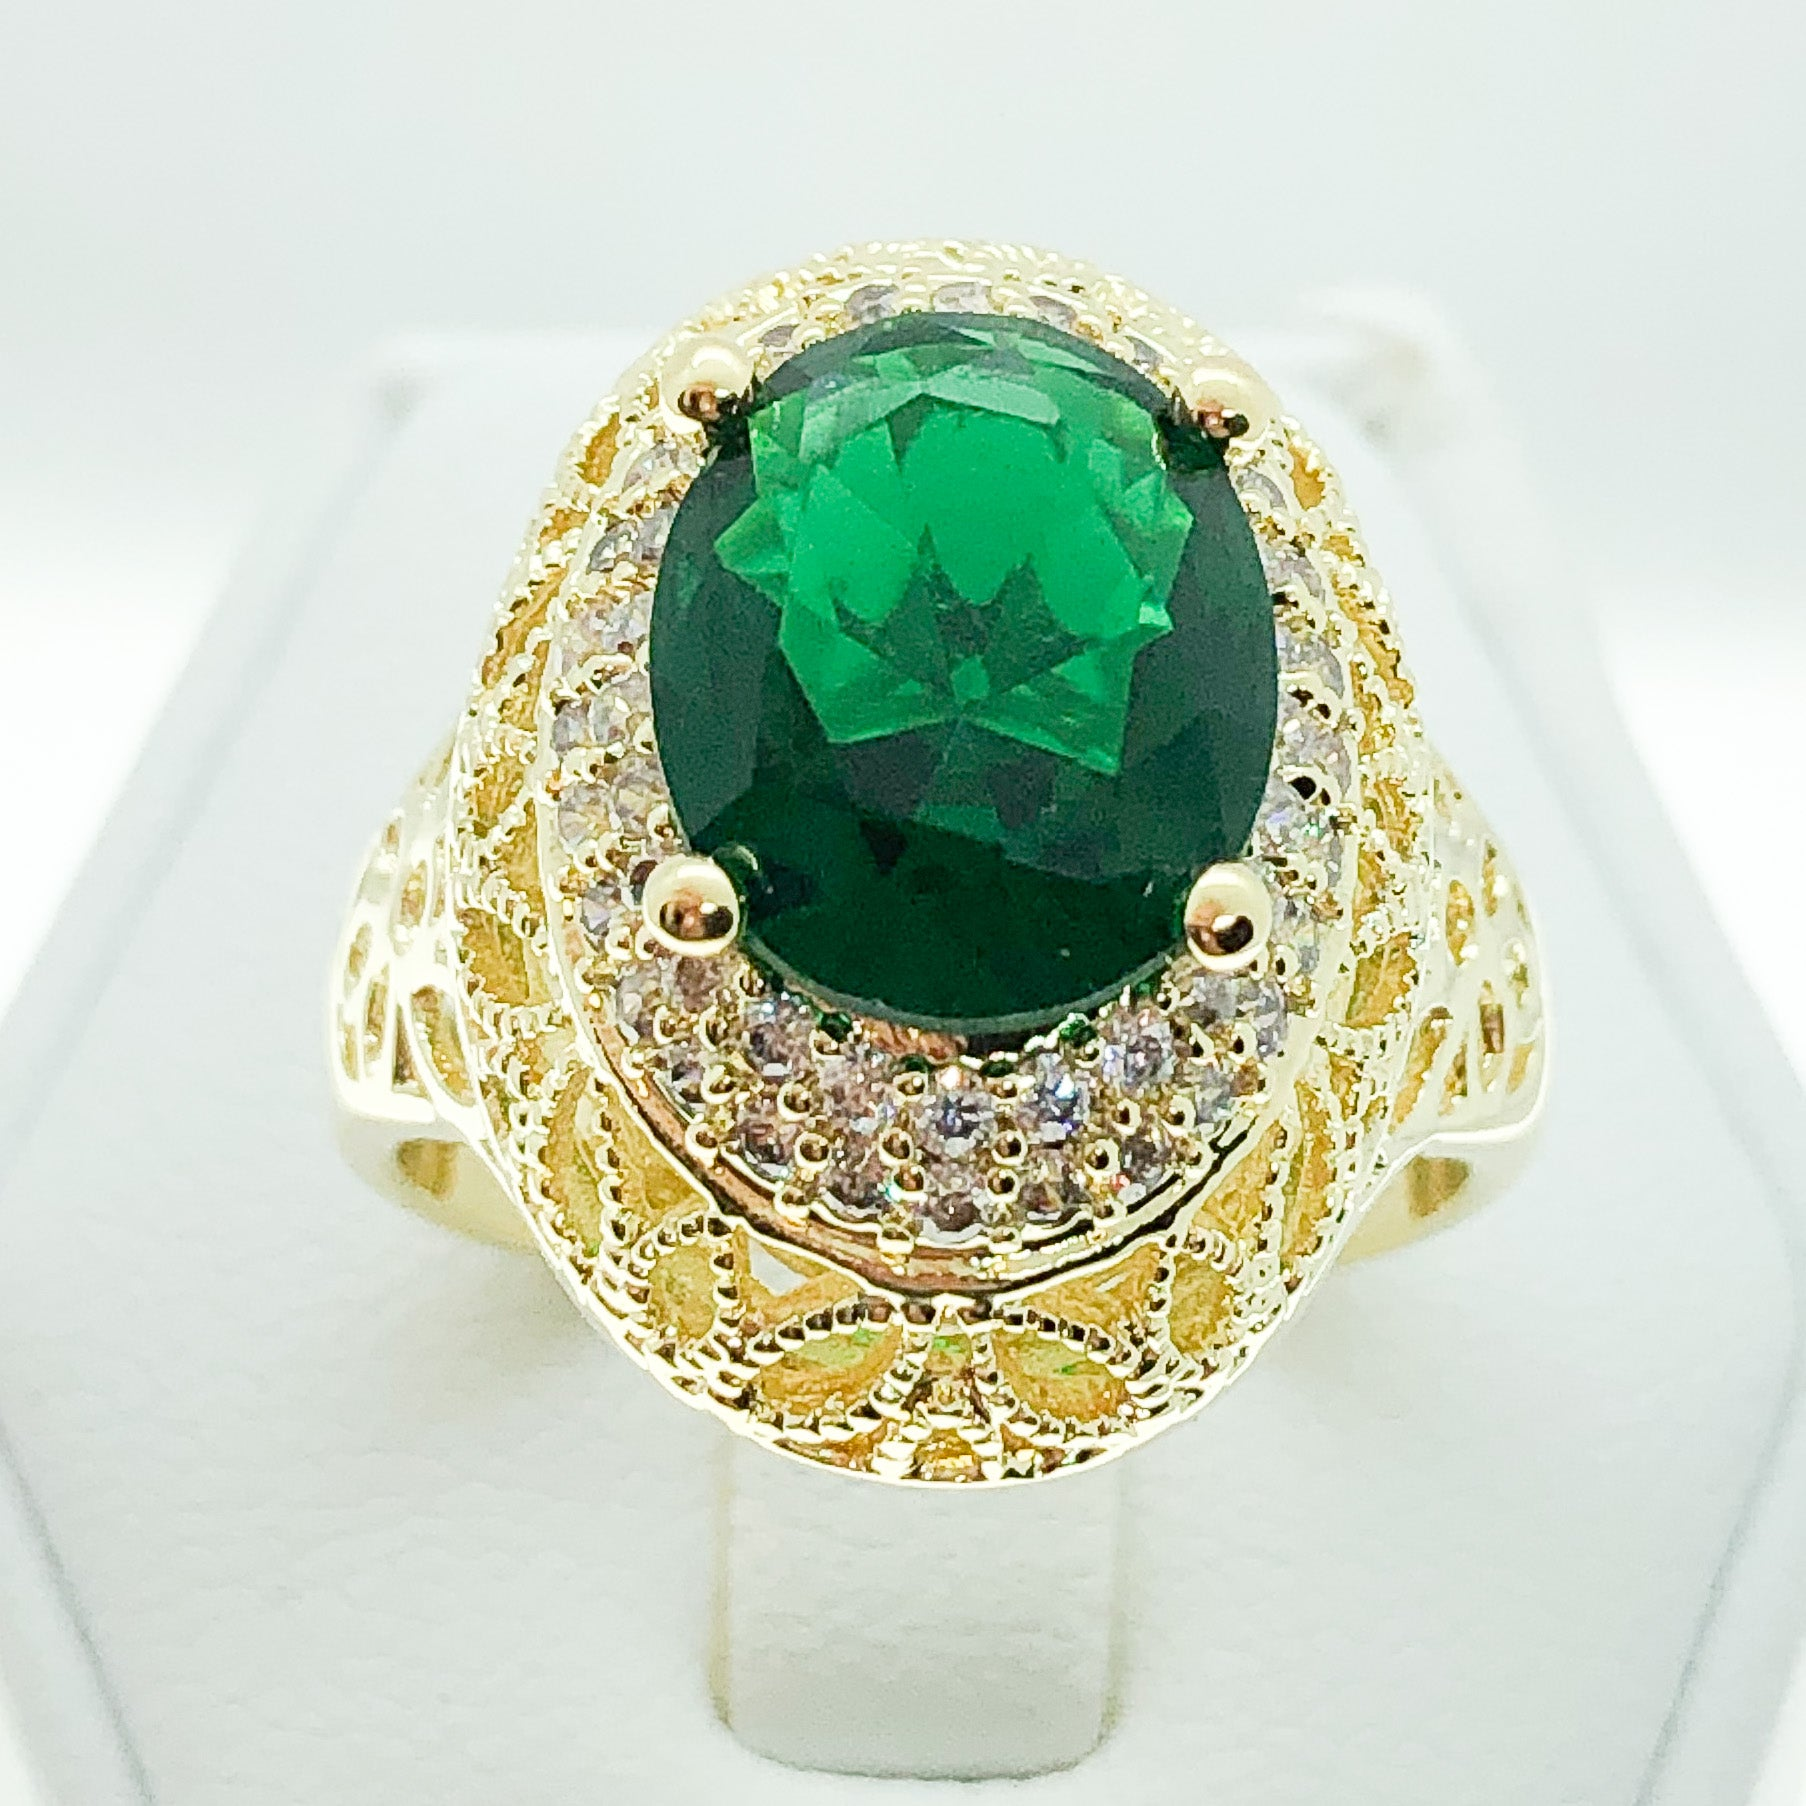 ID:R7014 Women 18K Yellow Gold GF Vintage Jewelry Solitaire Emerald Ring with Clear Stones Accent